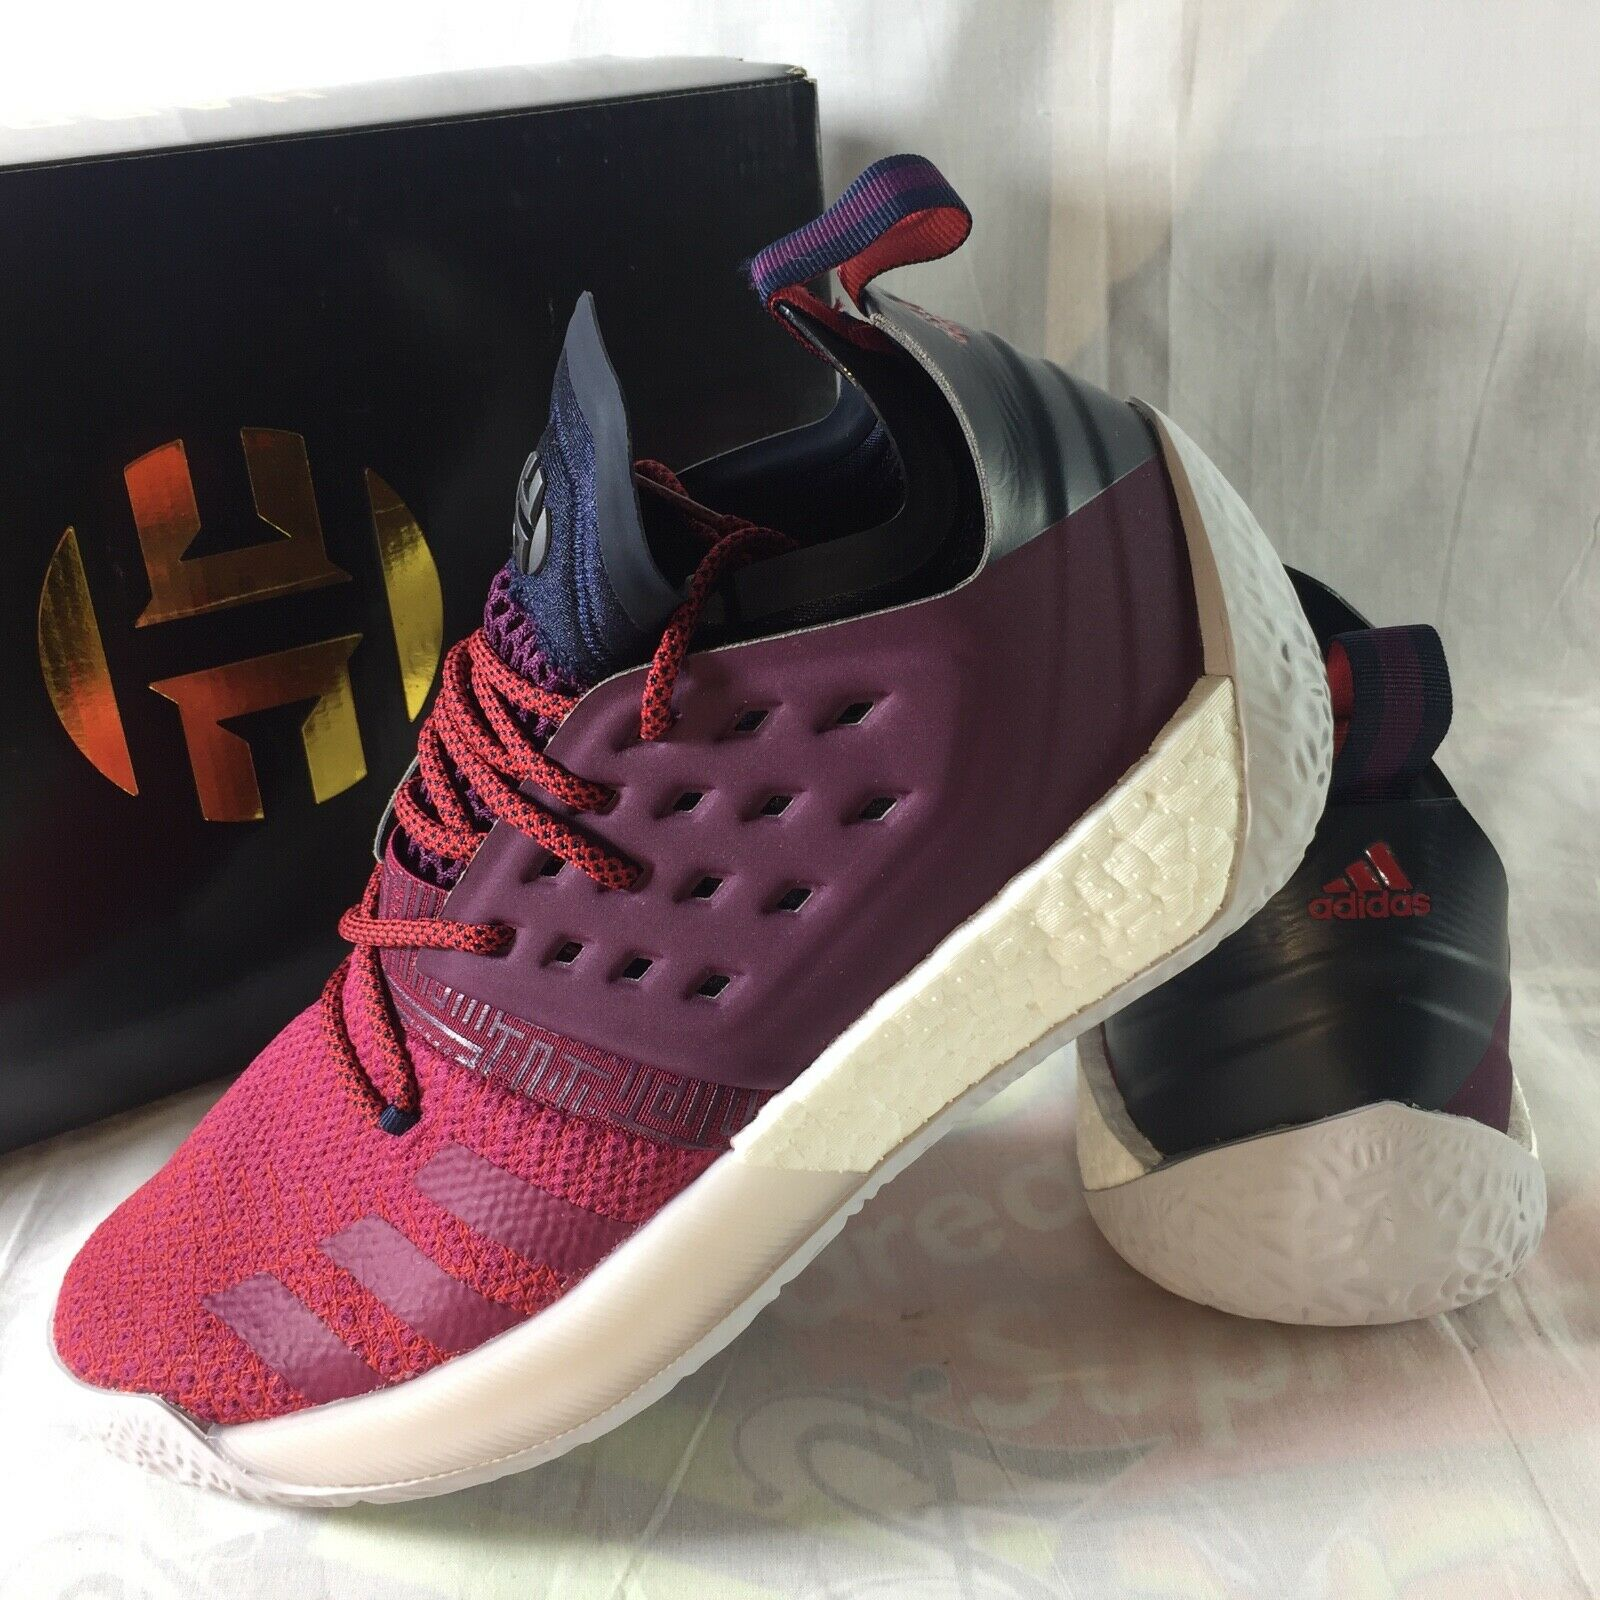 Adidas Harden Vol. 2 Men's Size 9 Boost Basketball shoes Sneakers NEW AH2124